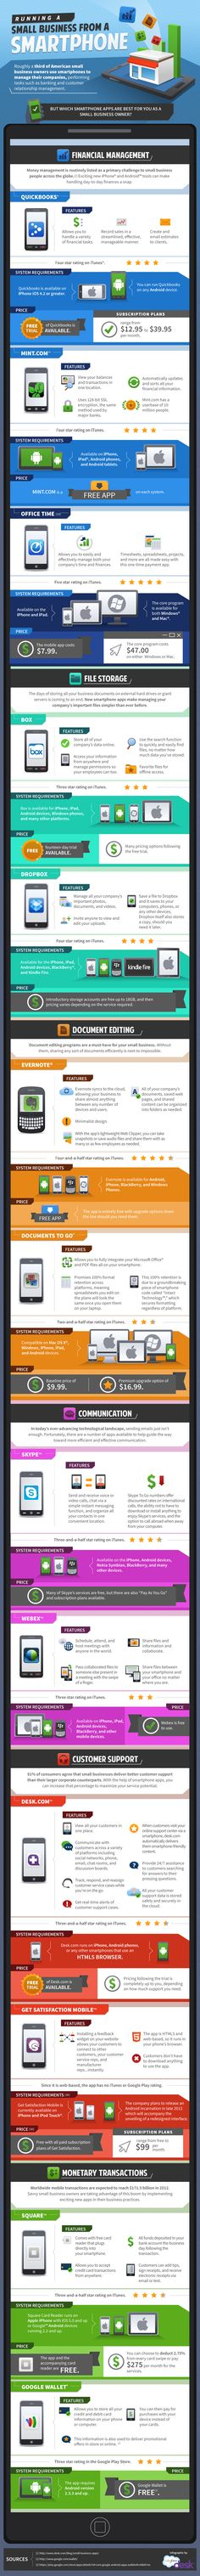 You Can Use Your Smartphone To Run Your Small Business [INFOGRAPHIC] | Social Media Today